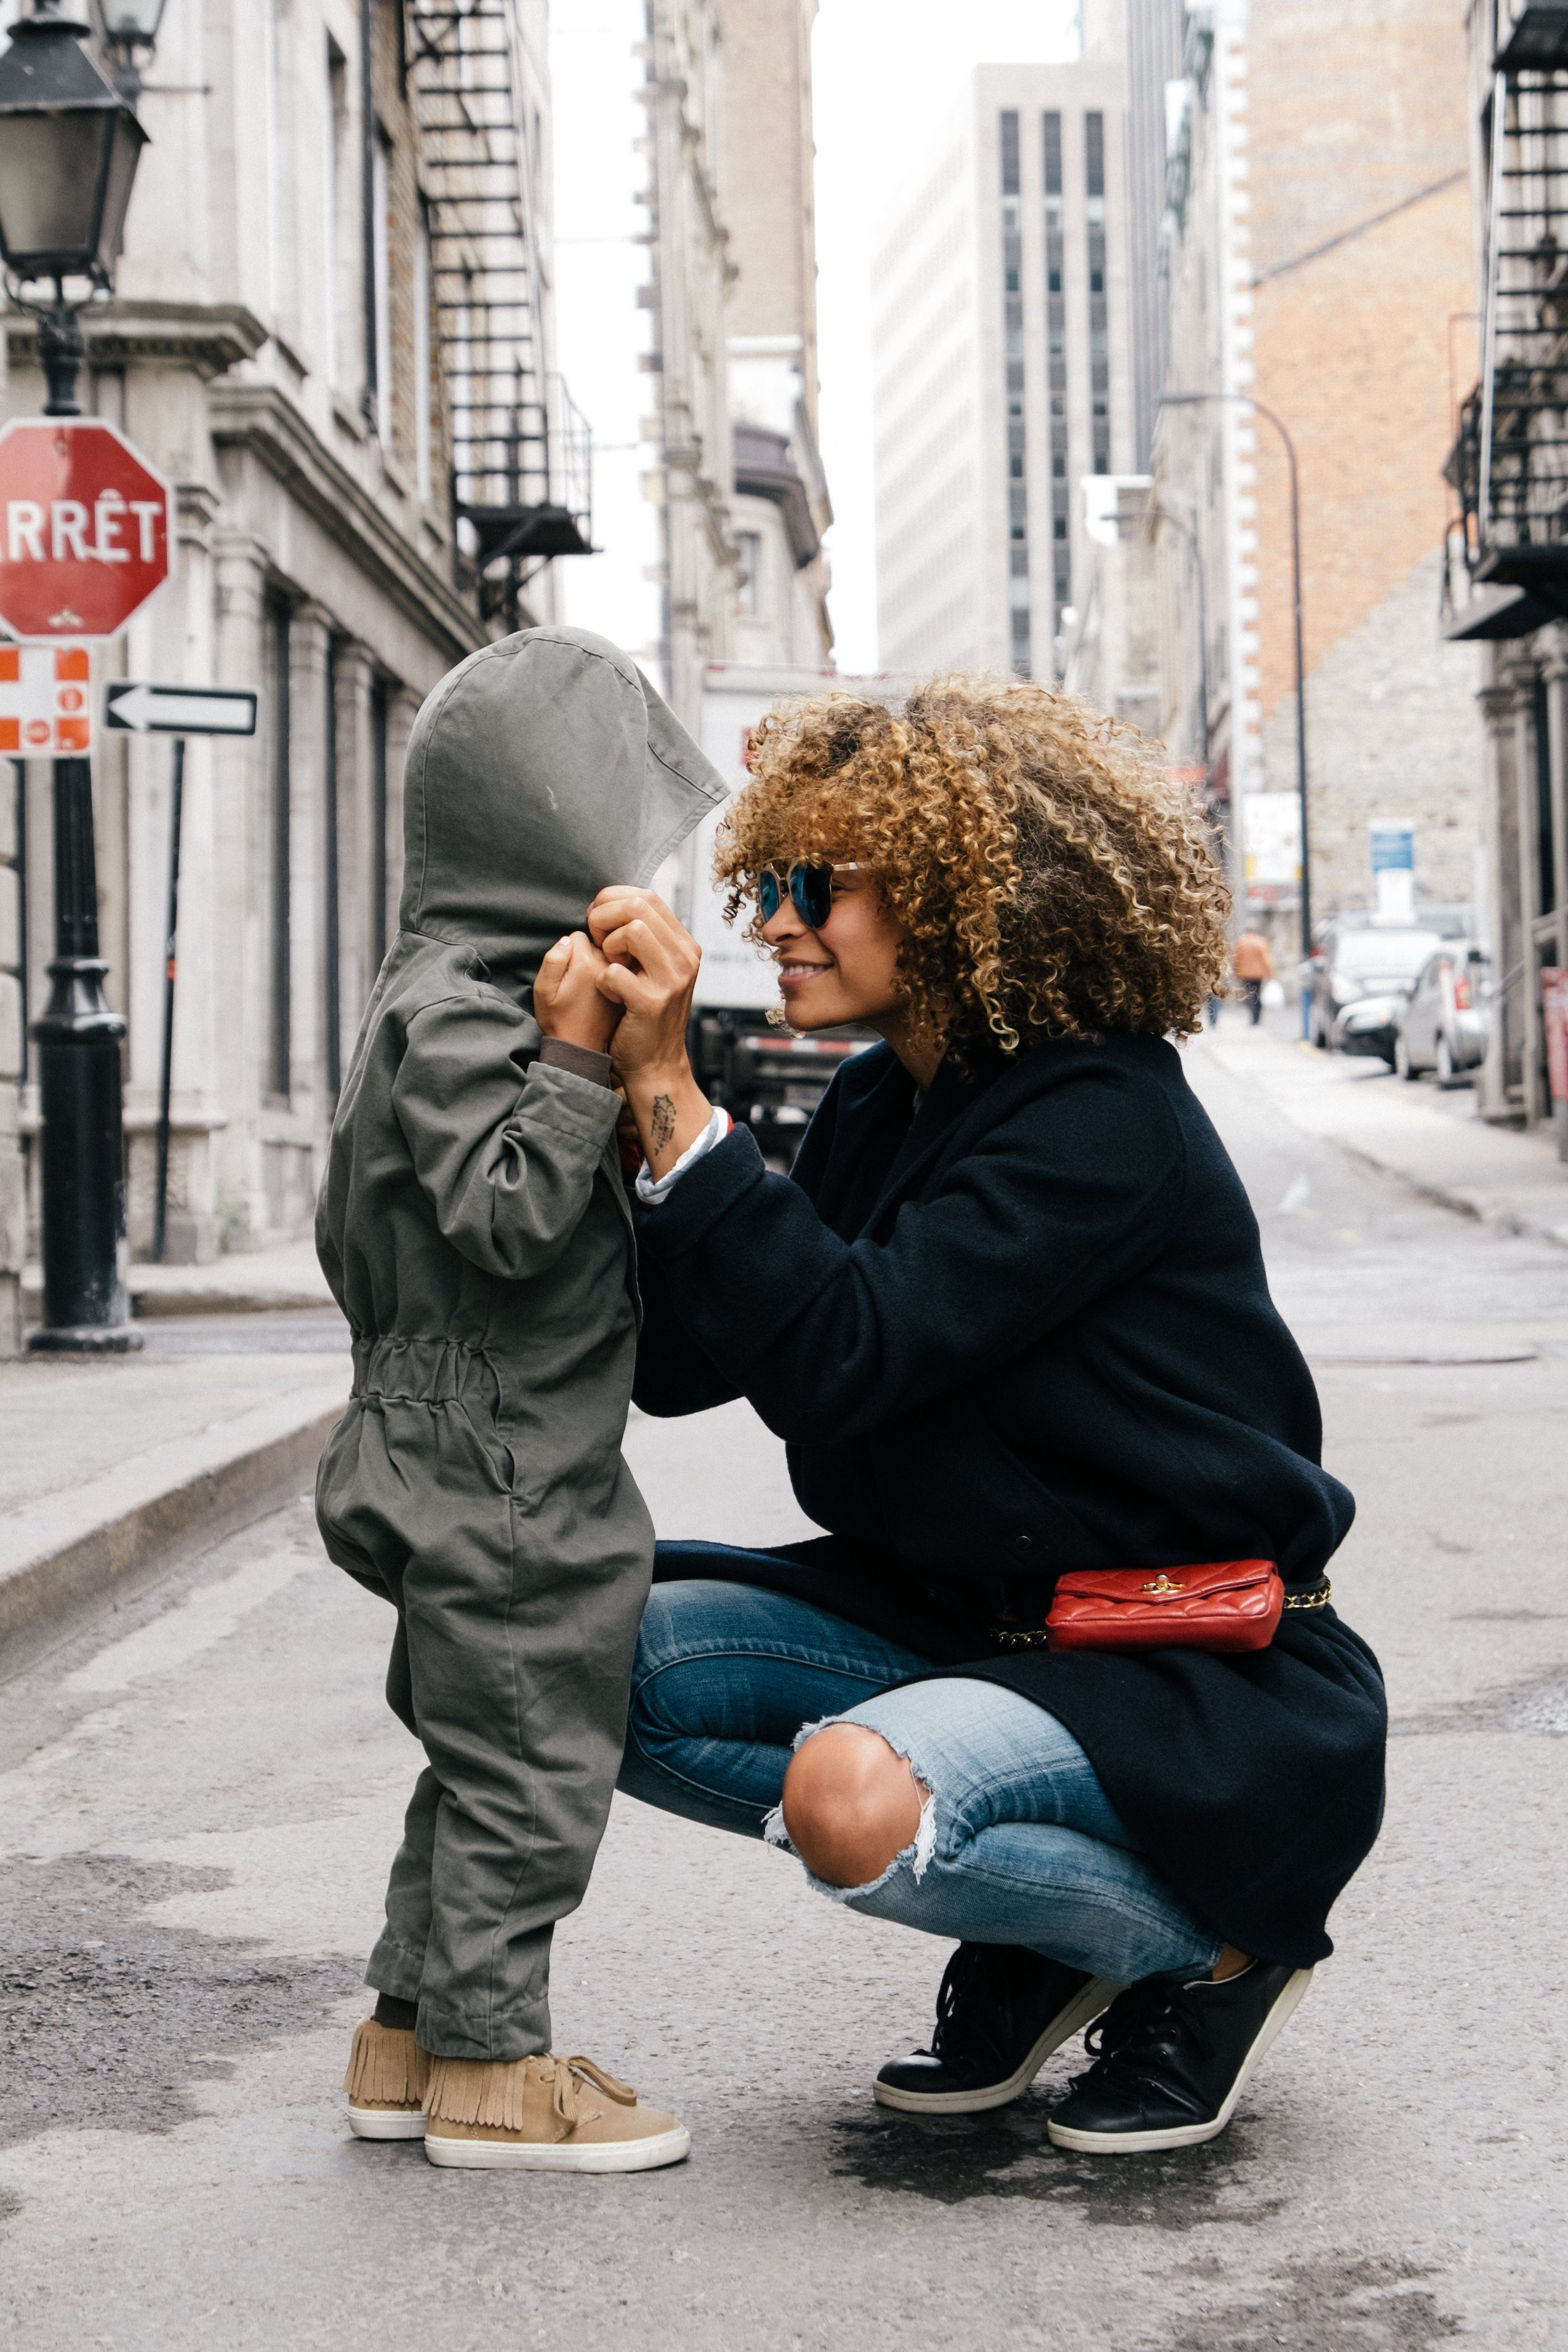 Parent Coaching - because kids are not the only ones who need a superhero